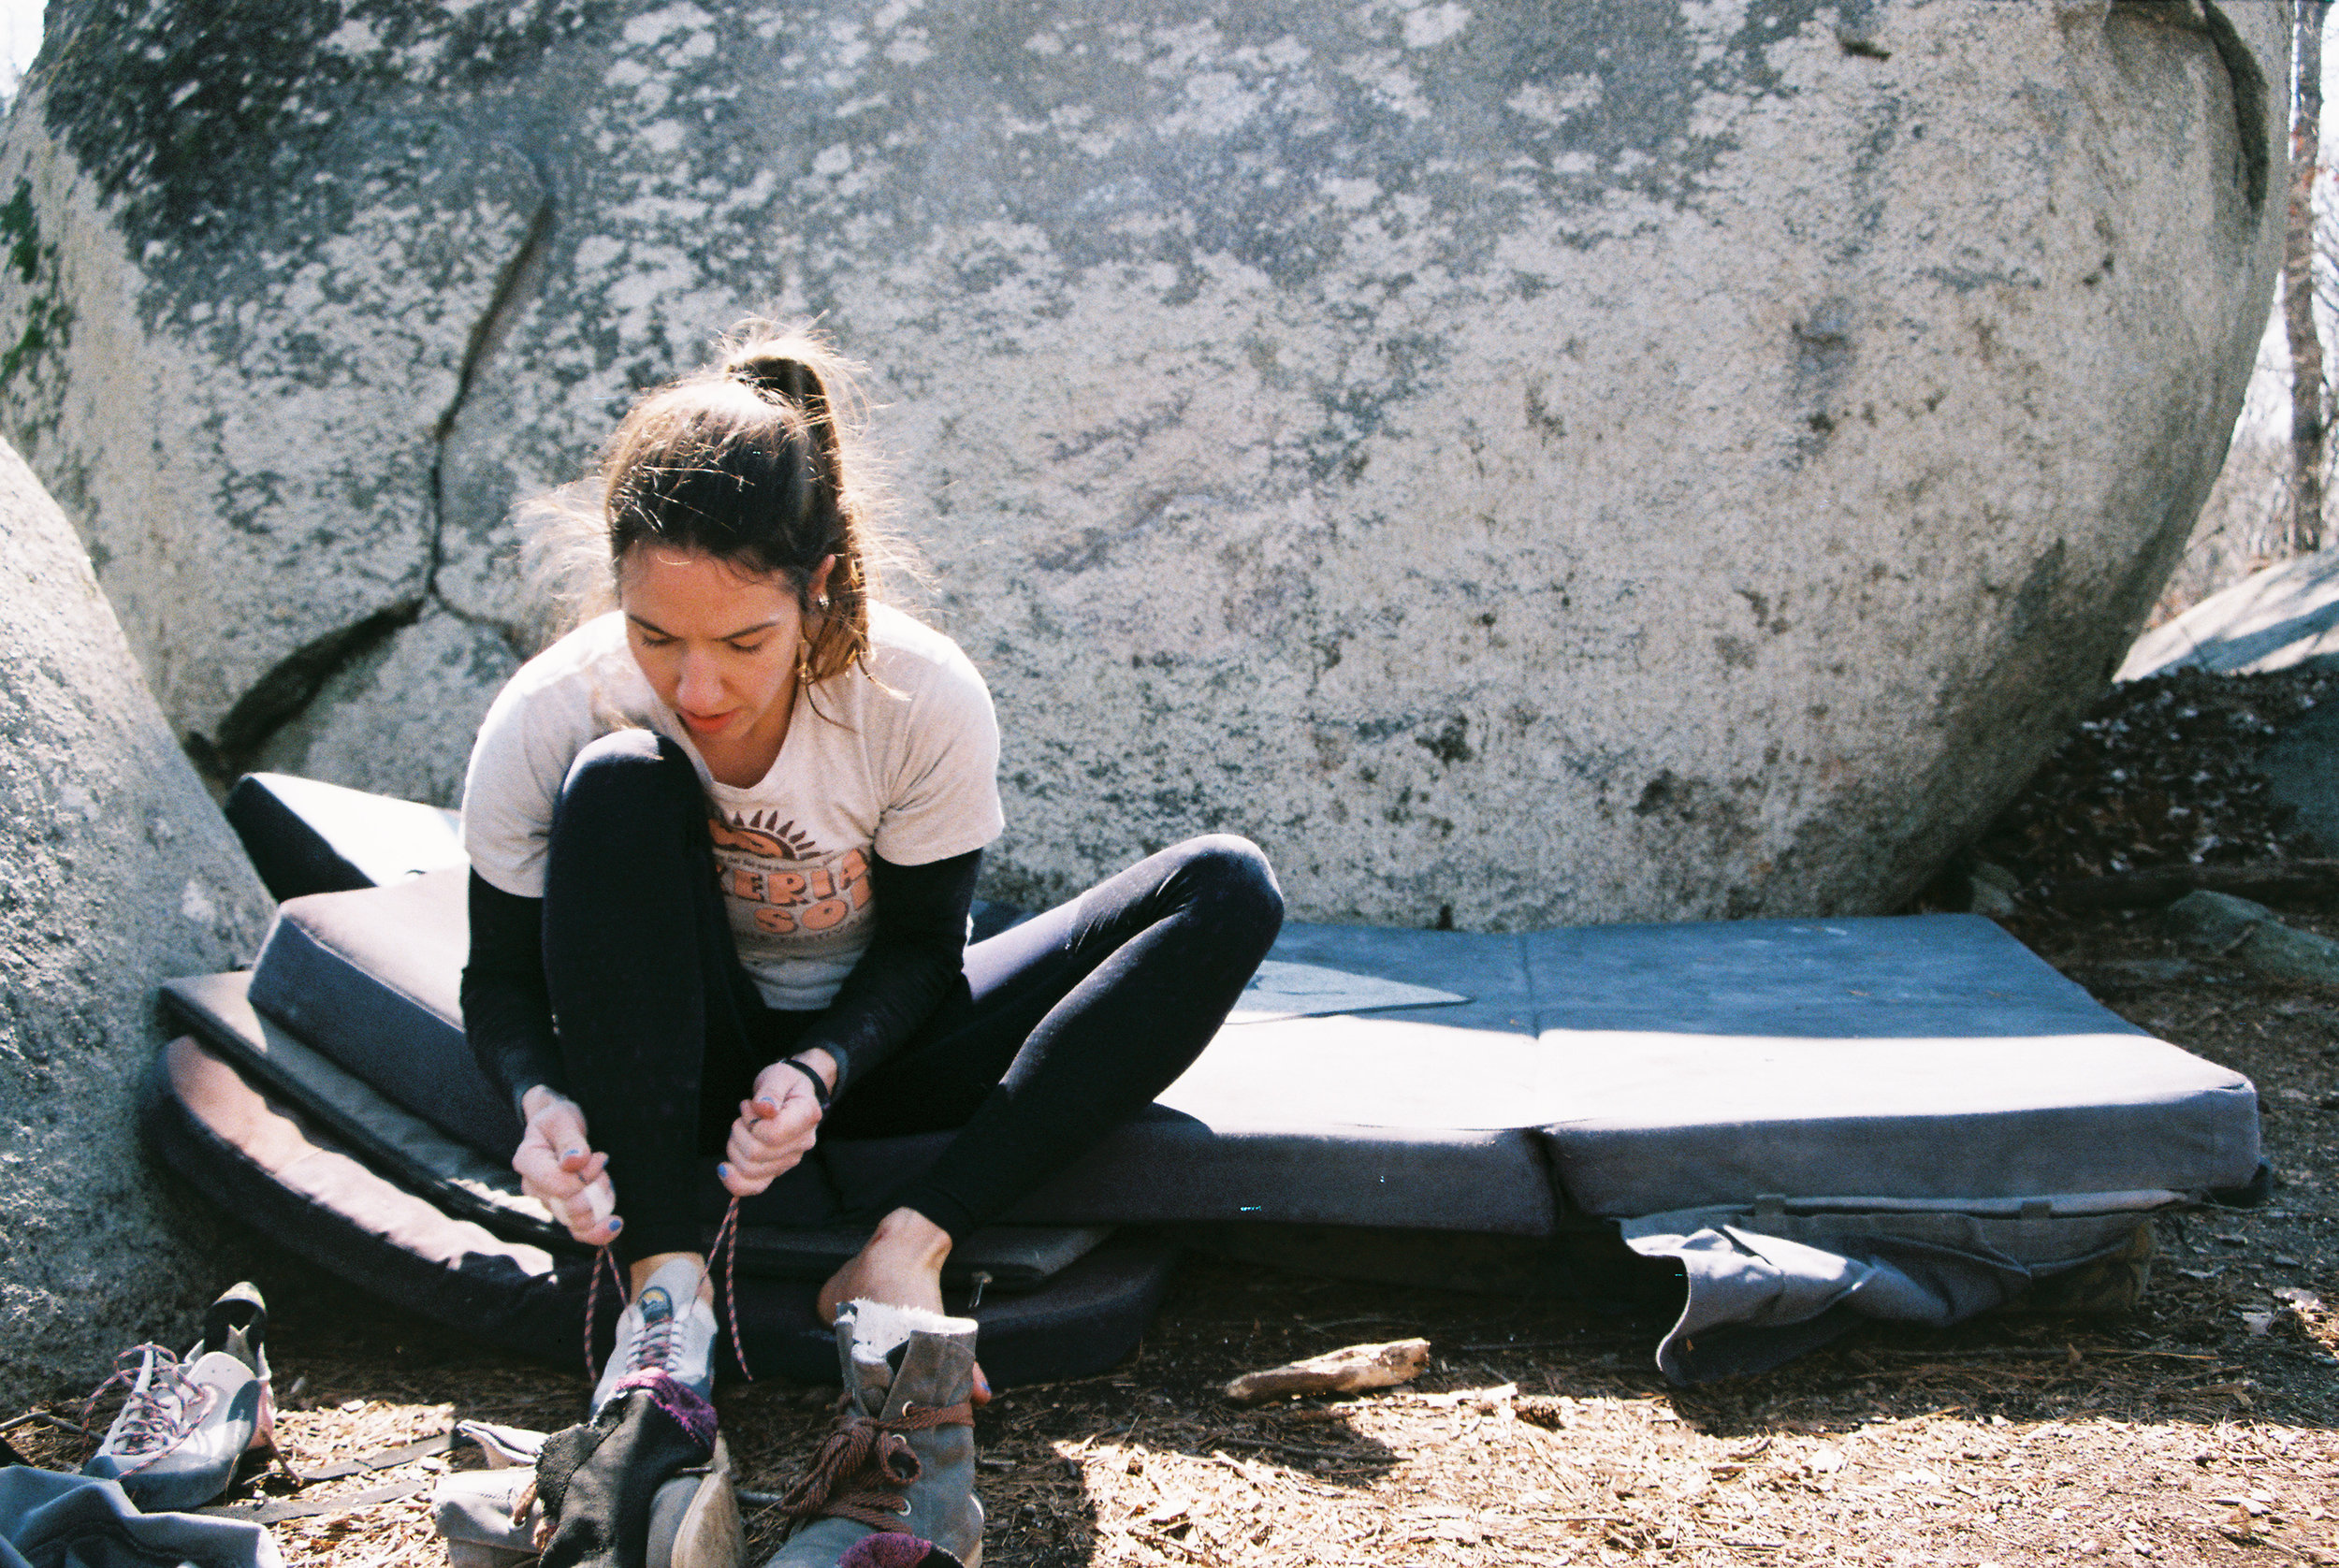 rock climber tightening shoes